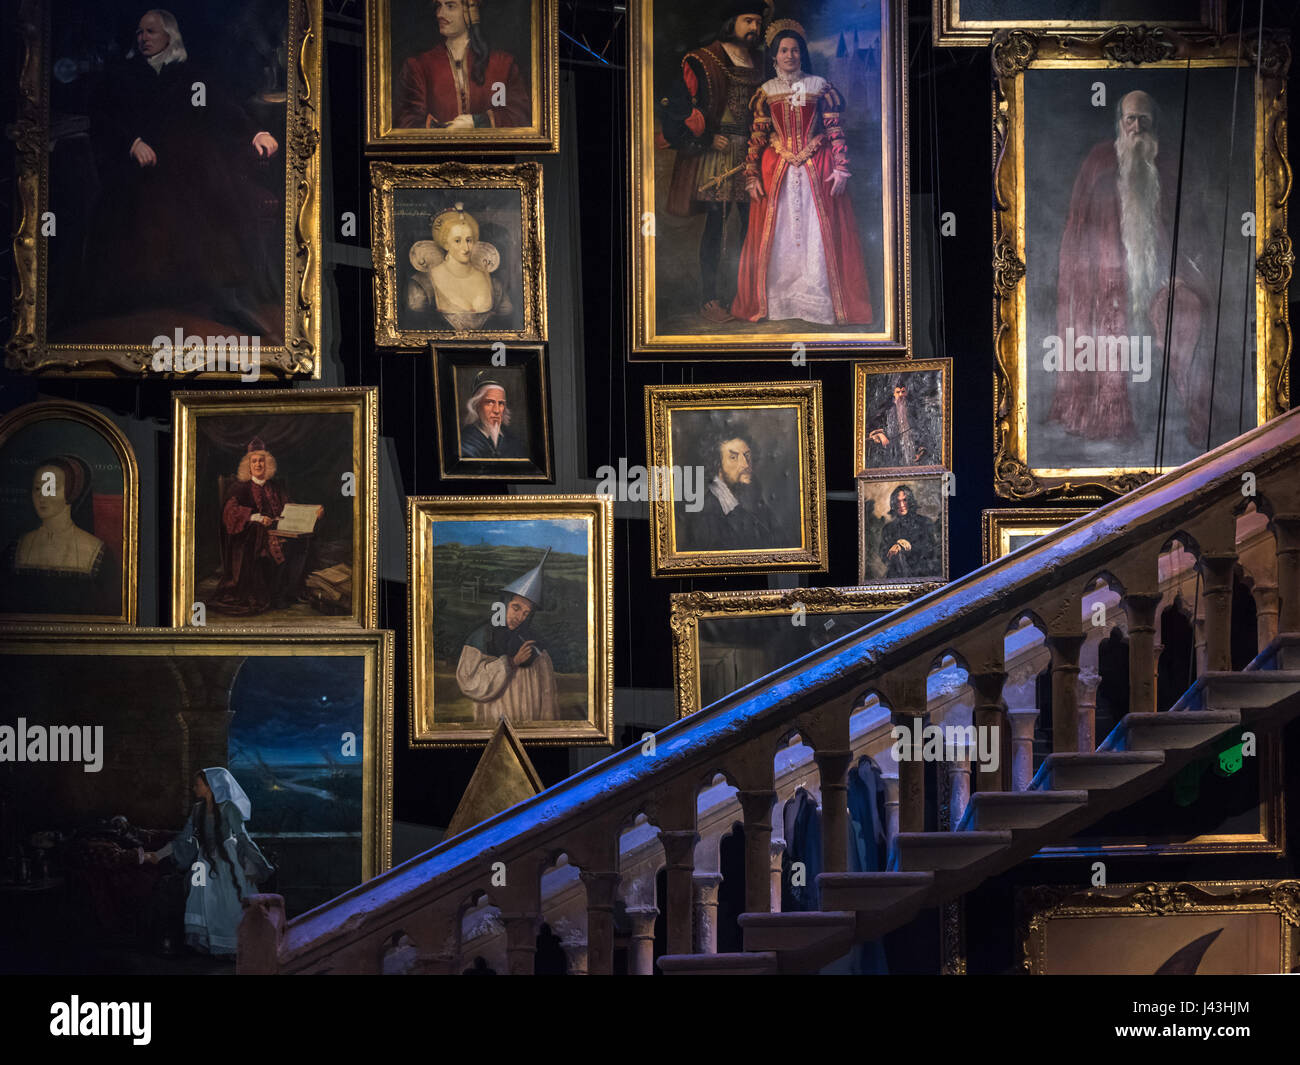 Harry Potter Staircase : Staircase portraits making of harry potter warner bros